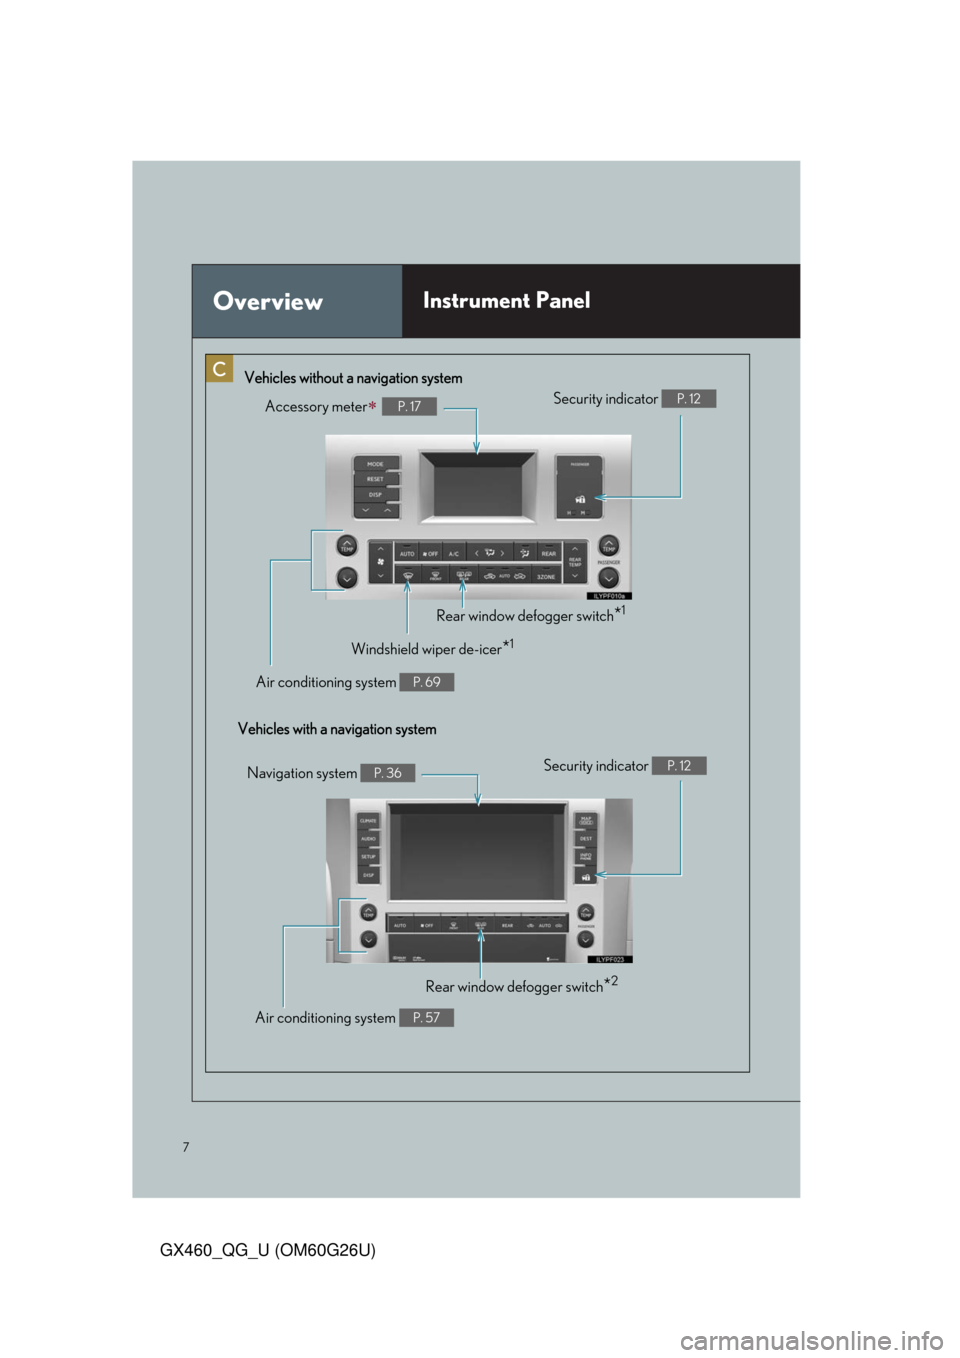 Lexus GX460 2011  Opening, Closing And Locking The Doors / LEXUS 2011 GX460 OWNERS MANUAL QUICK GUIDE (OM60G26U) 7 GX460_QG_U (OM60G26U) OverviewInstrument Panel Accessory meterP. 17 Vehicles without a navigation system Vehicles with a navigation systemSecurity indicator  P. 12 Rear window defogger switch*